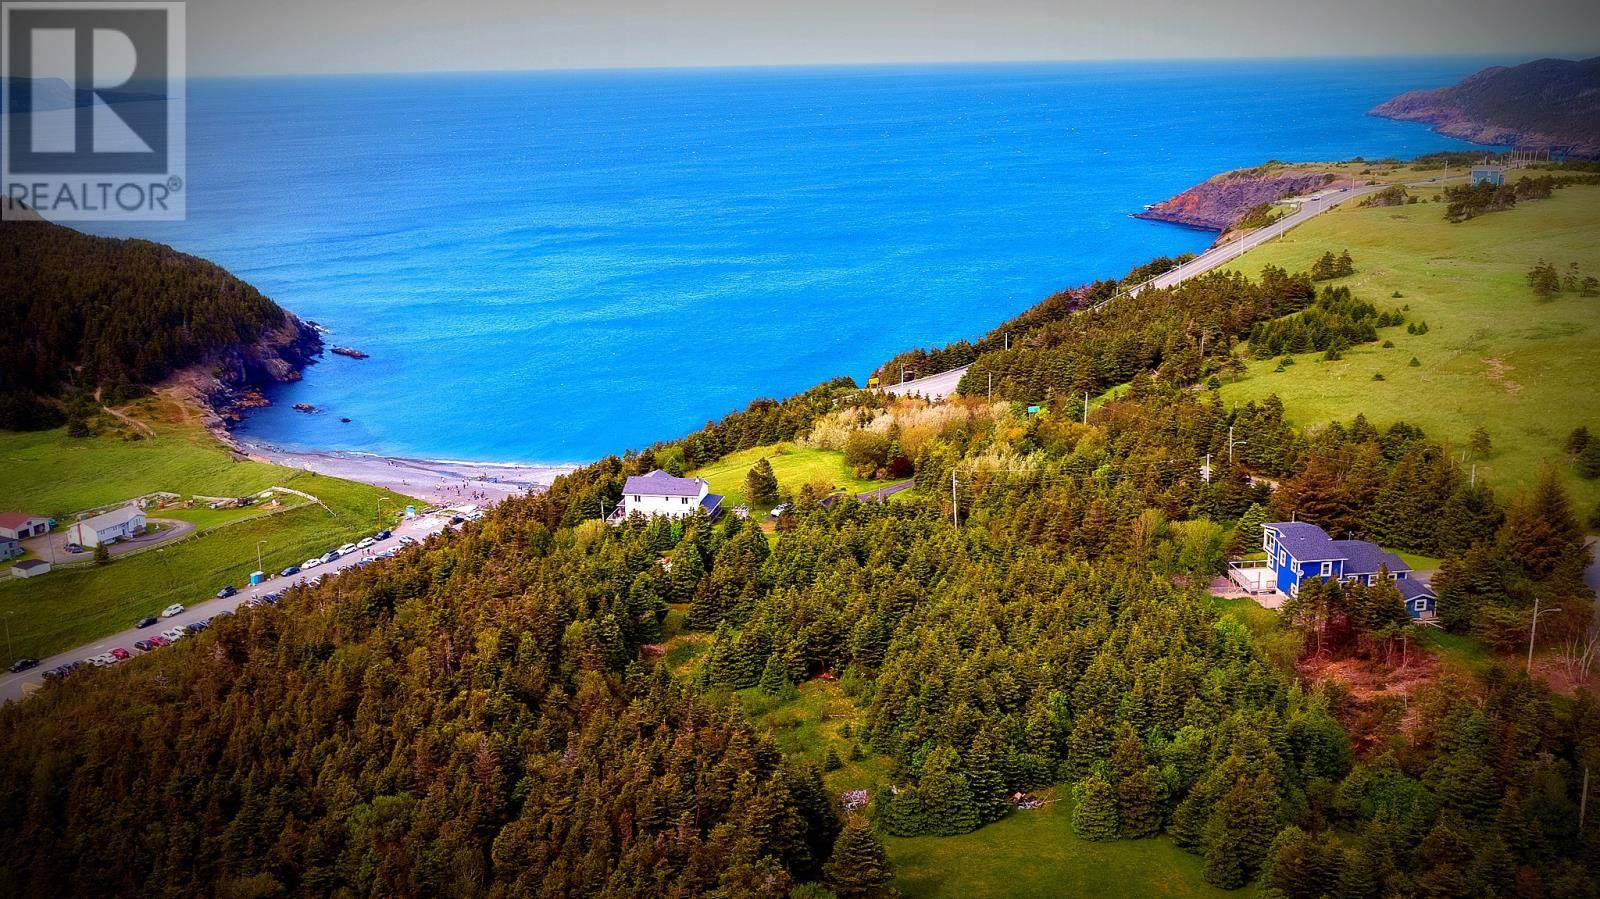 Home for sale at 237 Outer Cove (kelly's Hill) Rd Logy Bay Middle Cove Outer Cove Newfoundland - MLS: 1193145